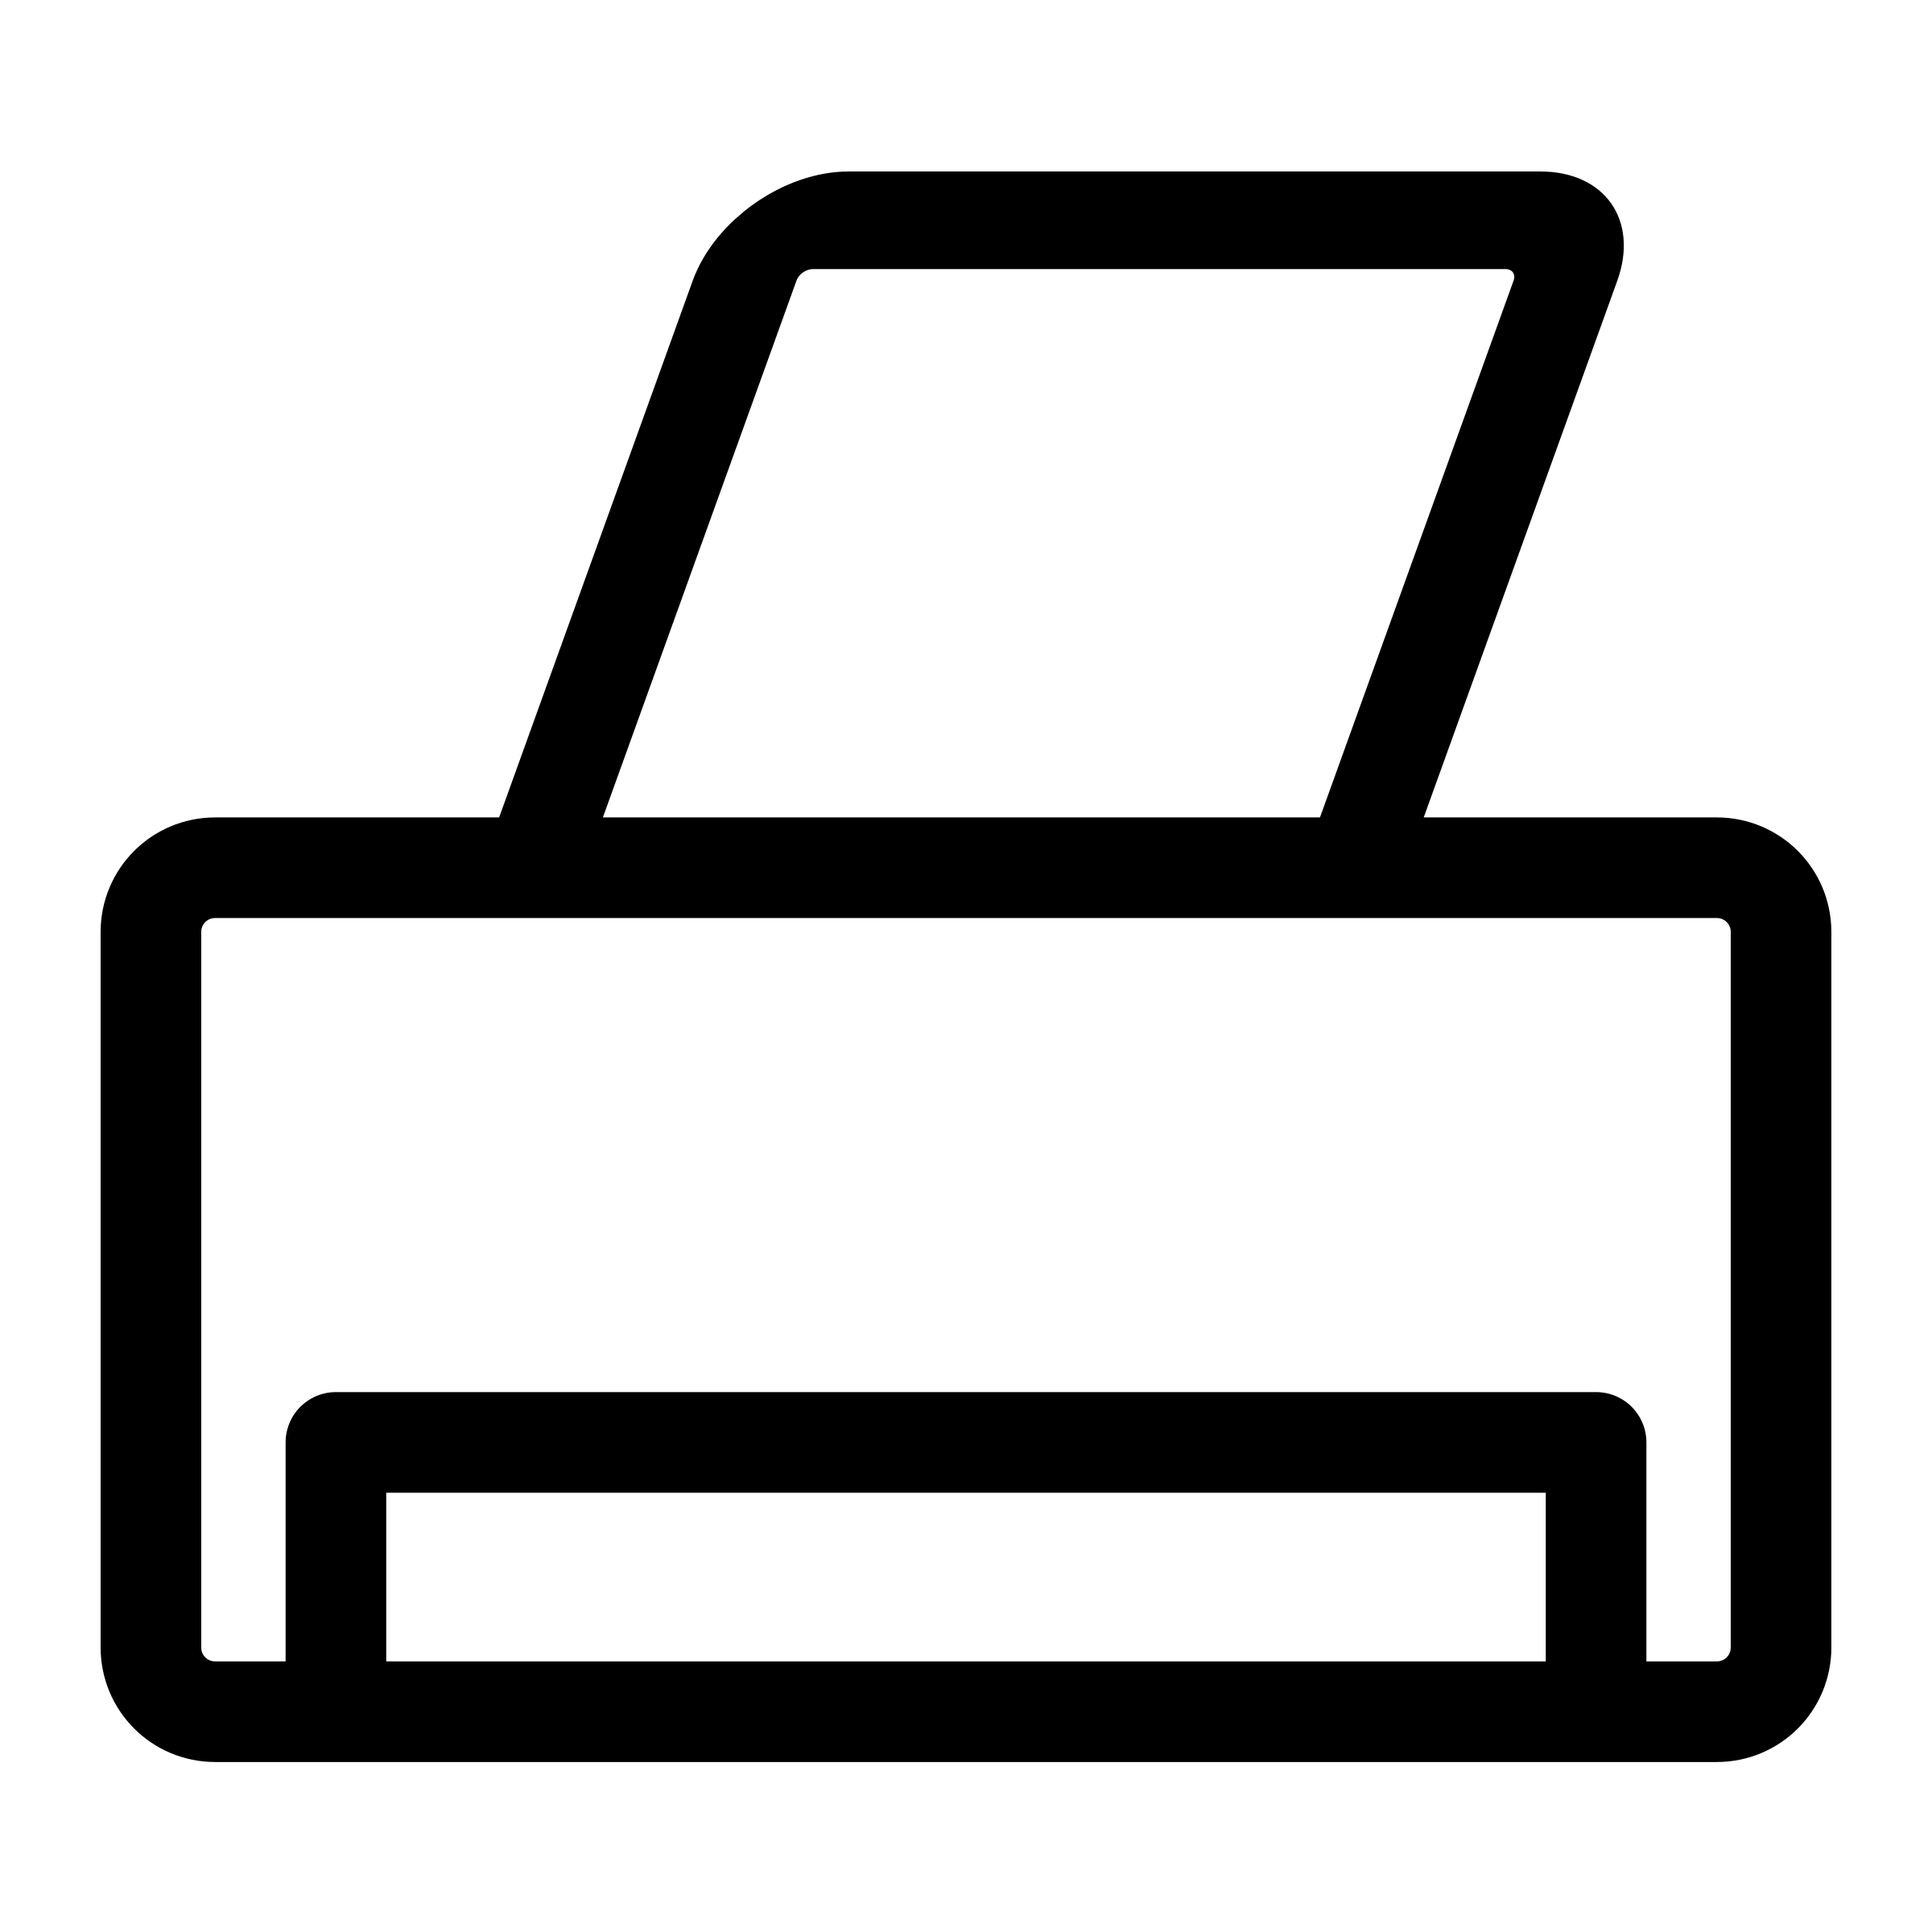 Mono printing section icons. Courthouse clipart icon